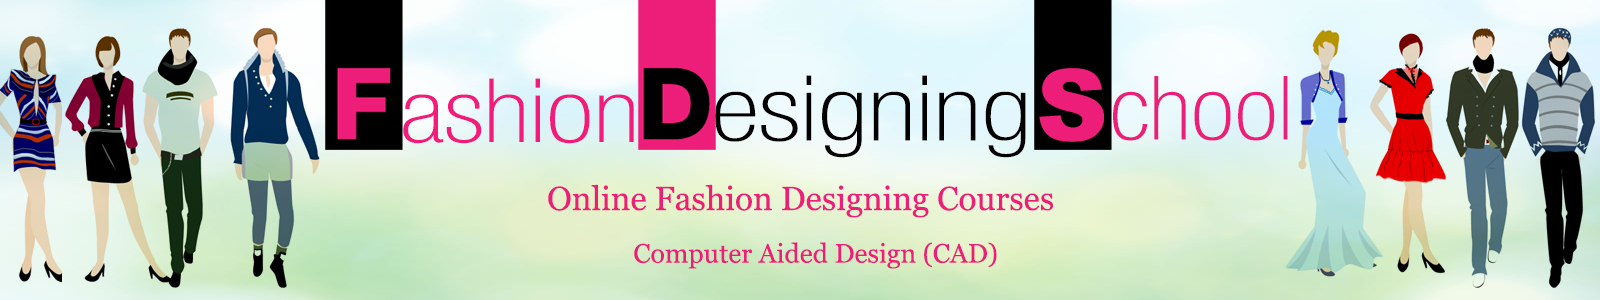 fashion designing courses online, online fashion designing course, cad textile design course